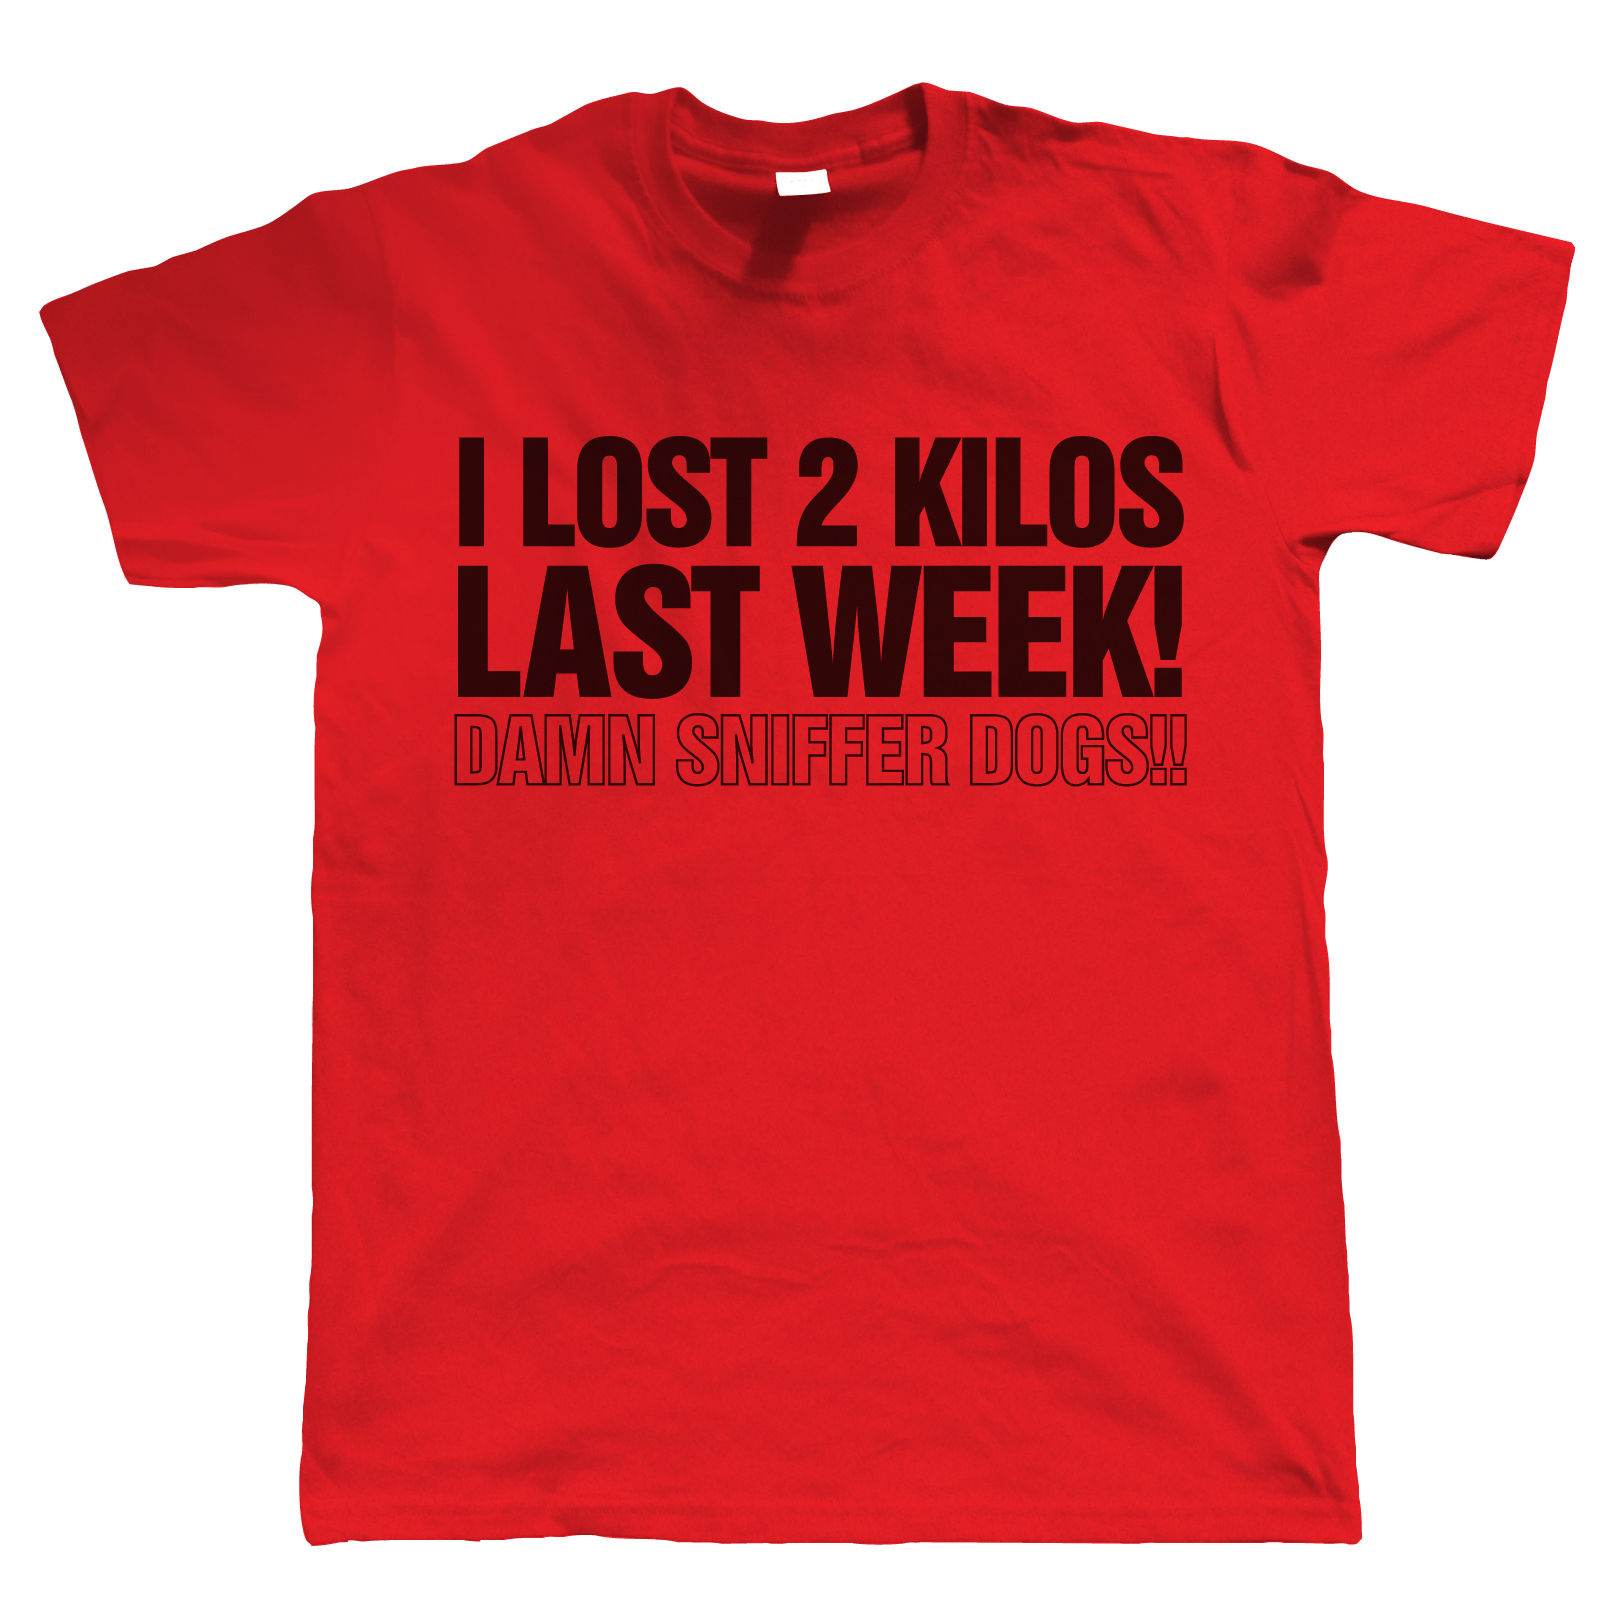 I lost 2 kilos last week mens funny t shirt birthday for Silly shirts for men